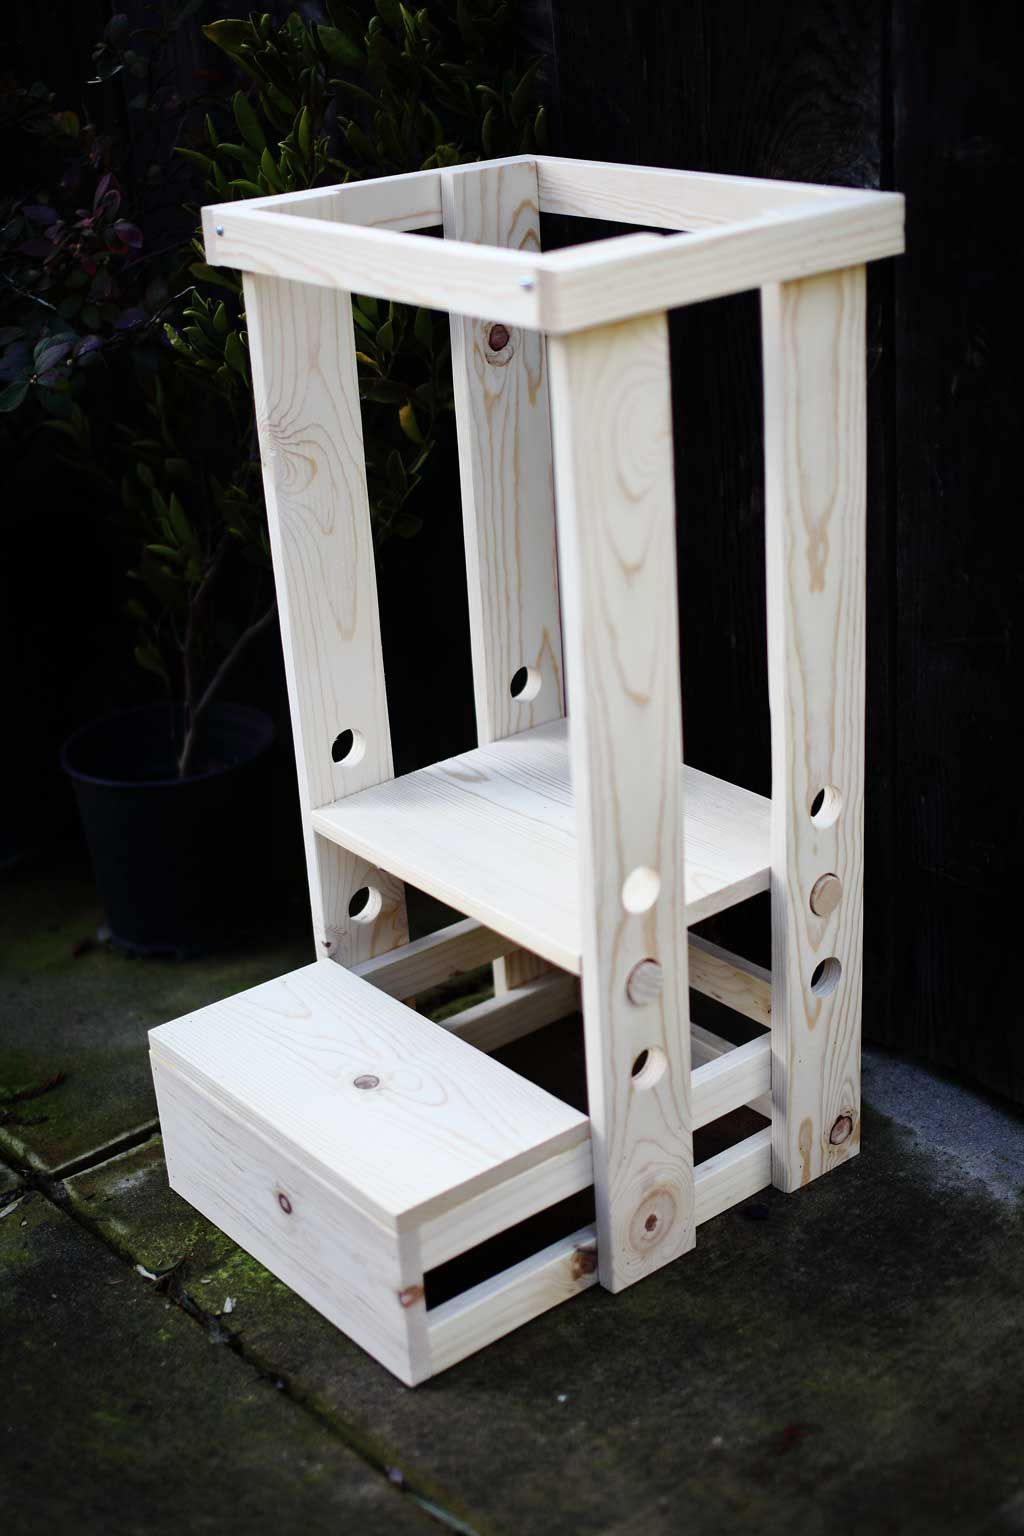 How to Build a DIY Toddler Step Stool with Guard Rail in ...